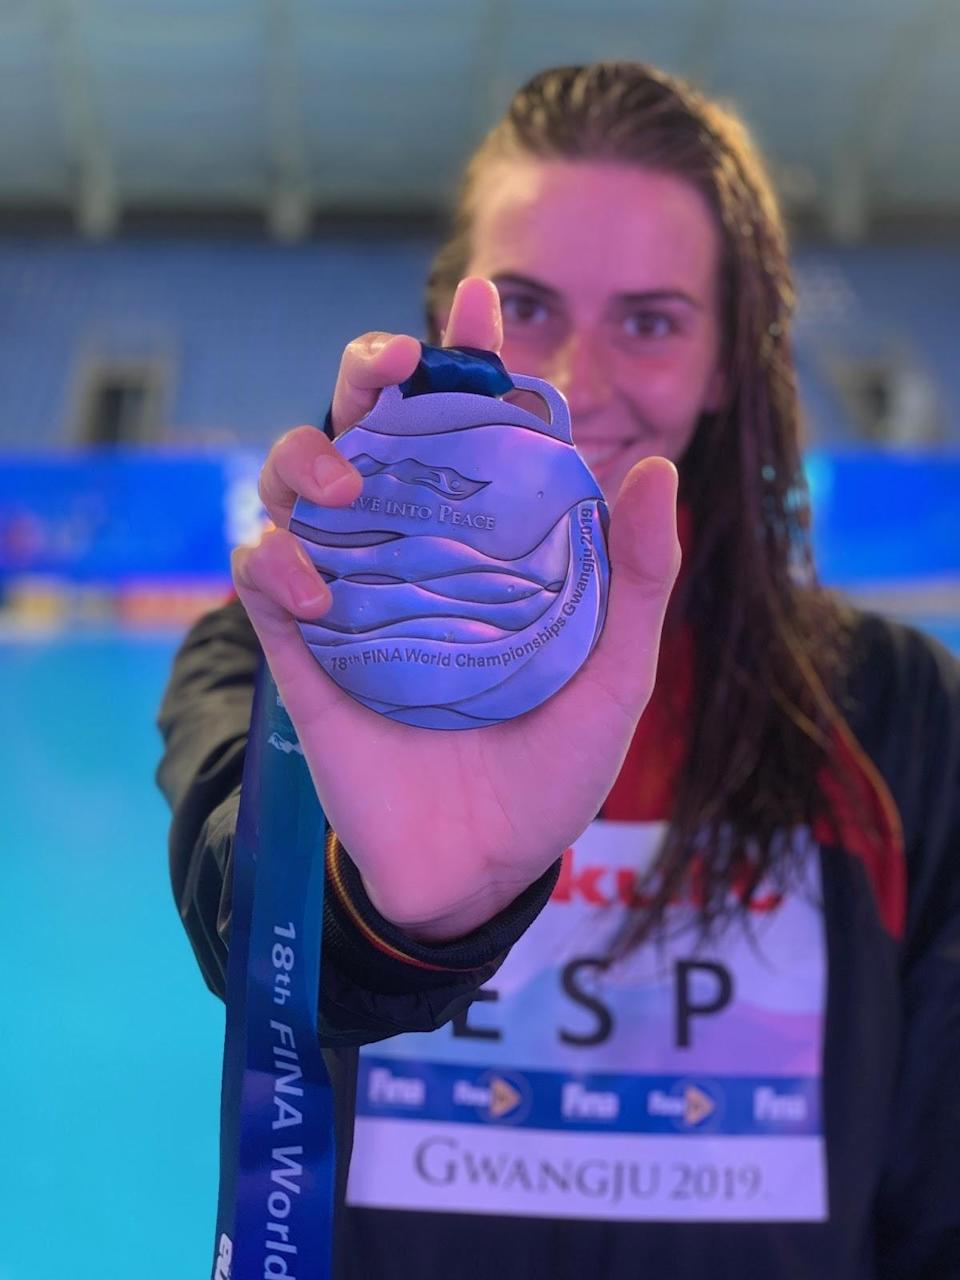 Bea shows off the World silver medal won by the Spanish team in 2019. (Photo: Bea Ortiz)